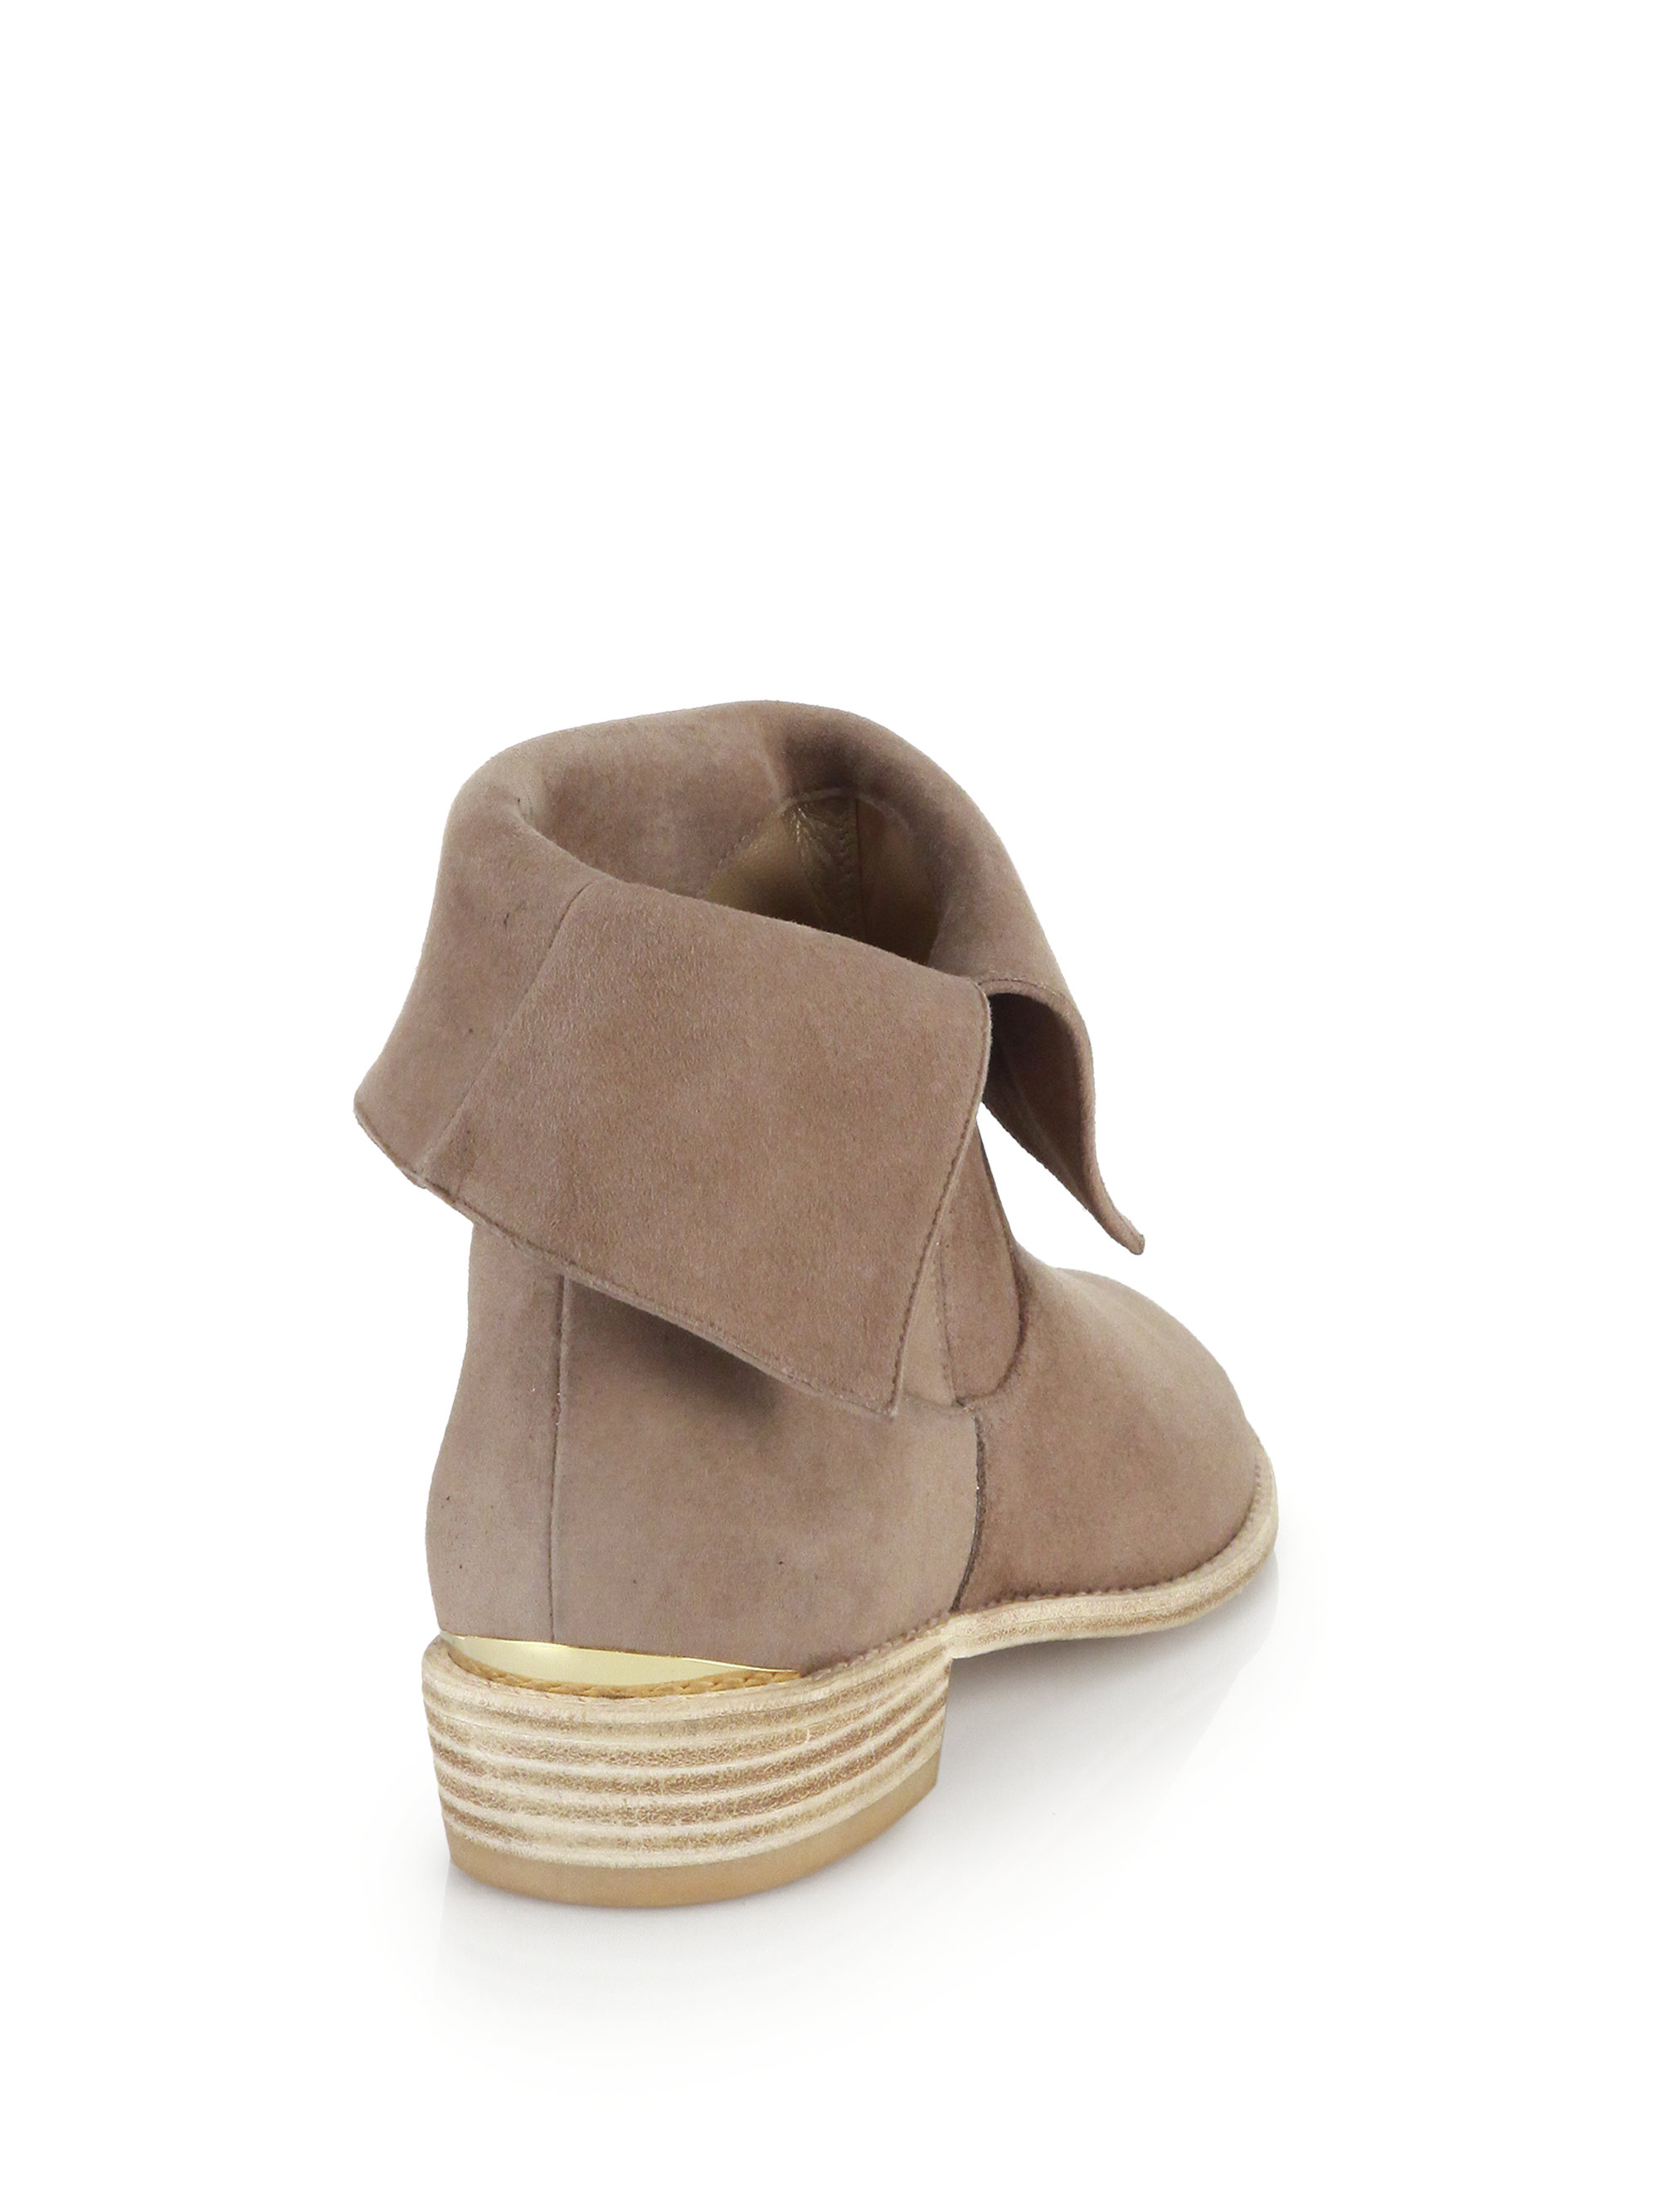 Stuart weitzman Suede Foldover Ankle Boots in Natural   Lyst